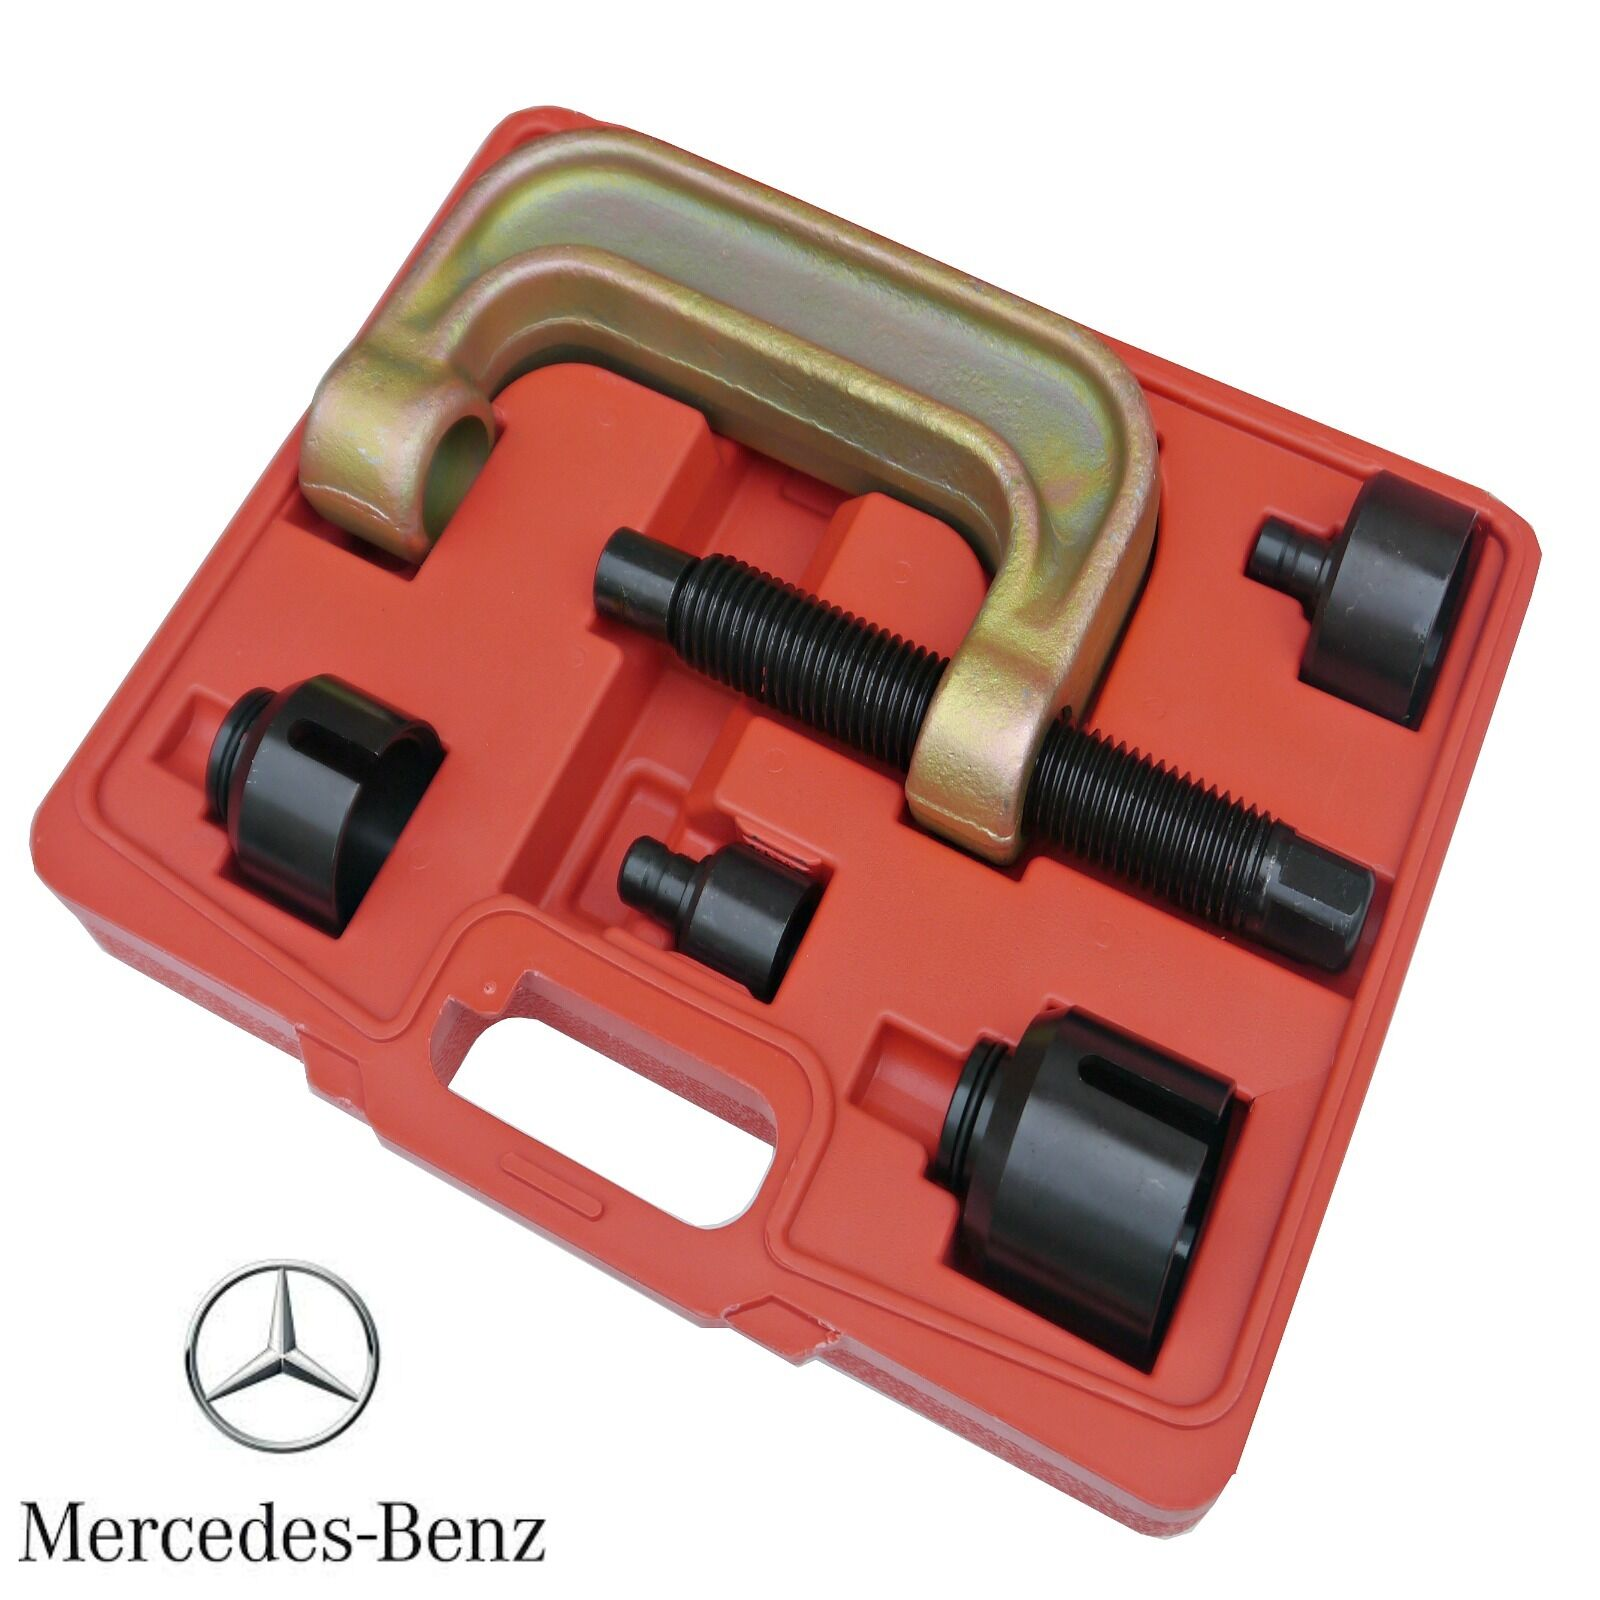 Mercedes ball joint kit remover extractor press tool kit for Mercedes benz special tools